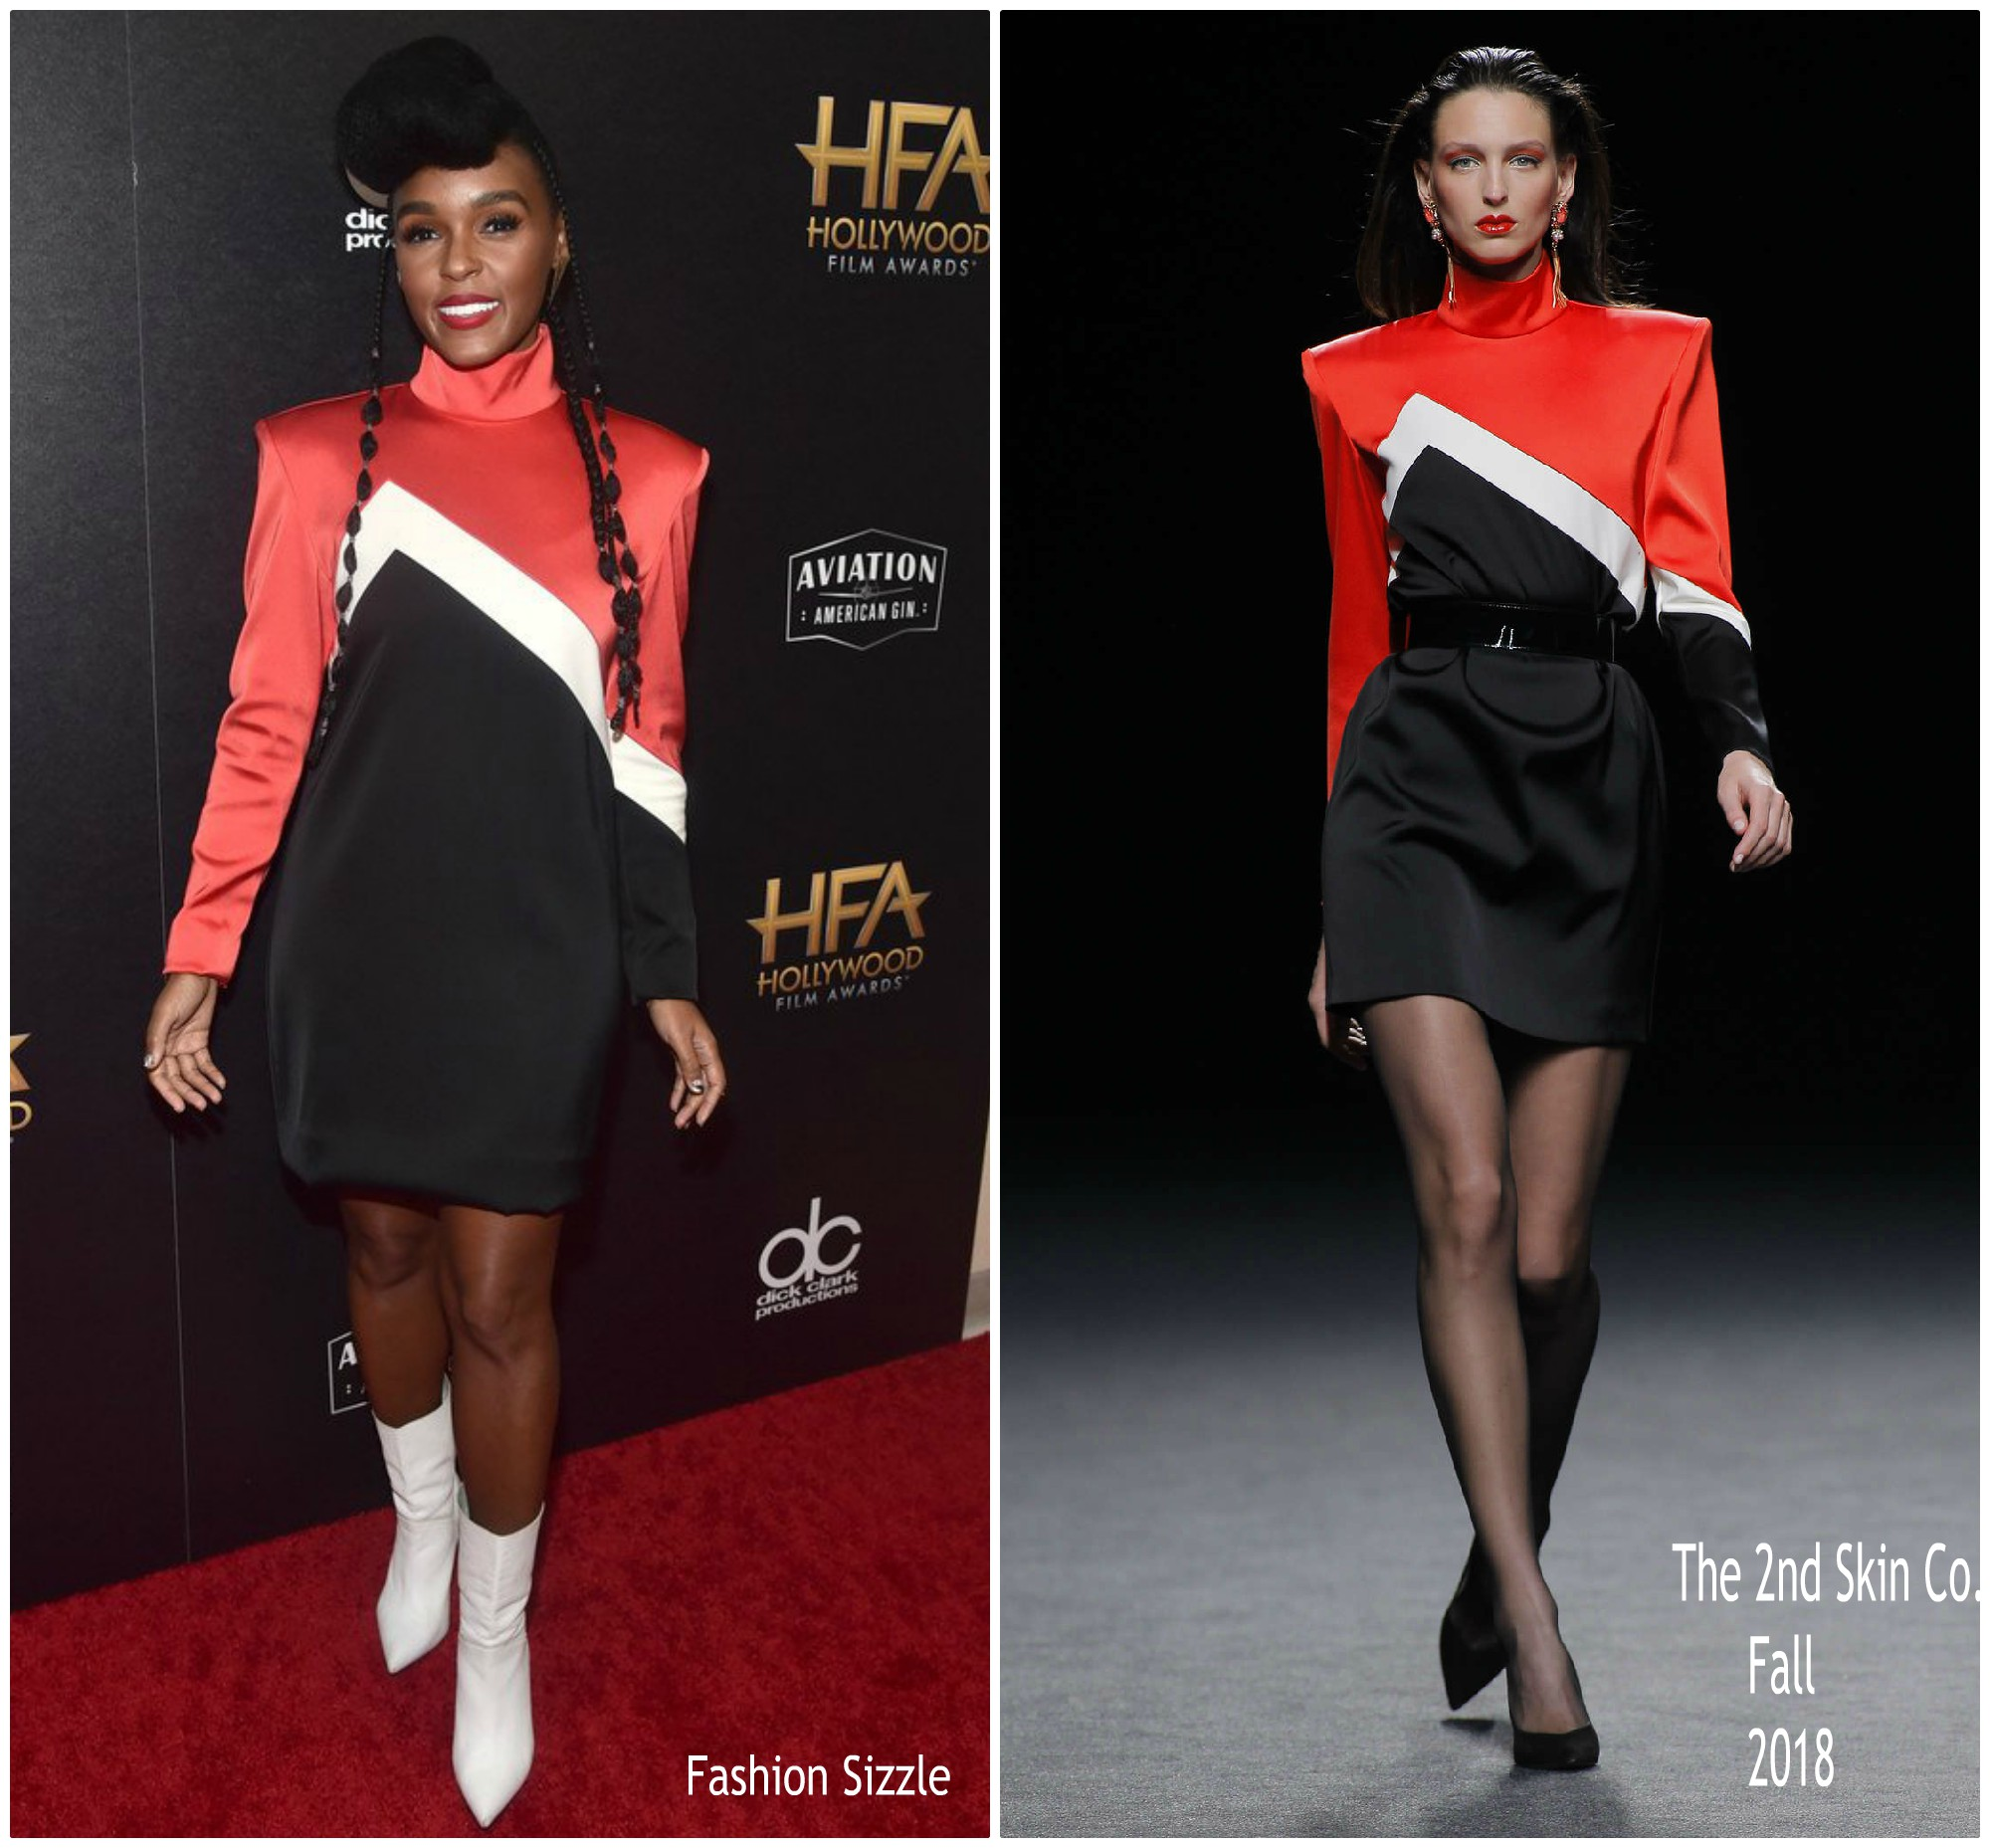 janelle-monae-in-the-2nd-skin-co-22nd-annual-hollywood-film-awards